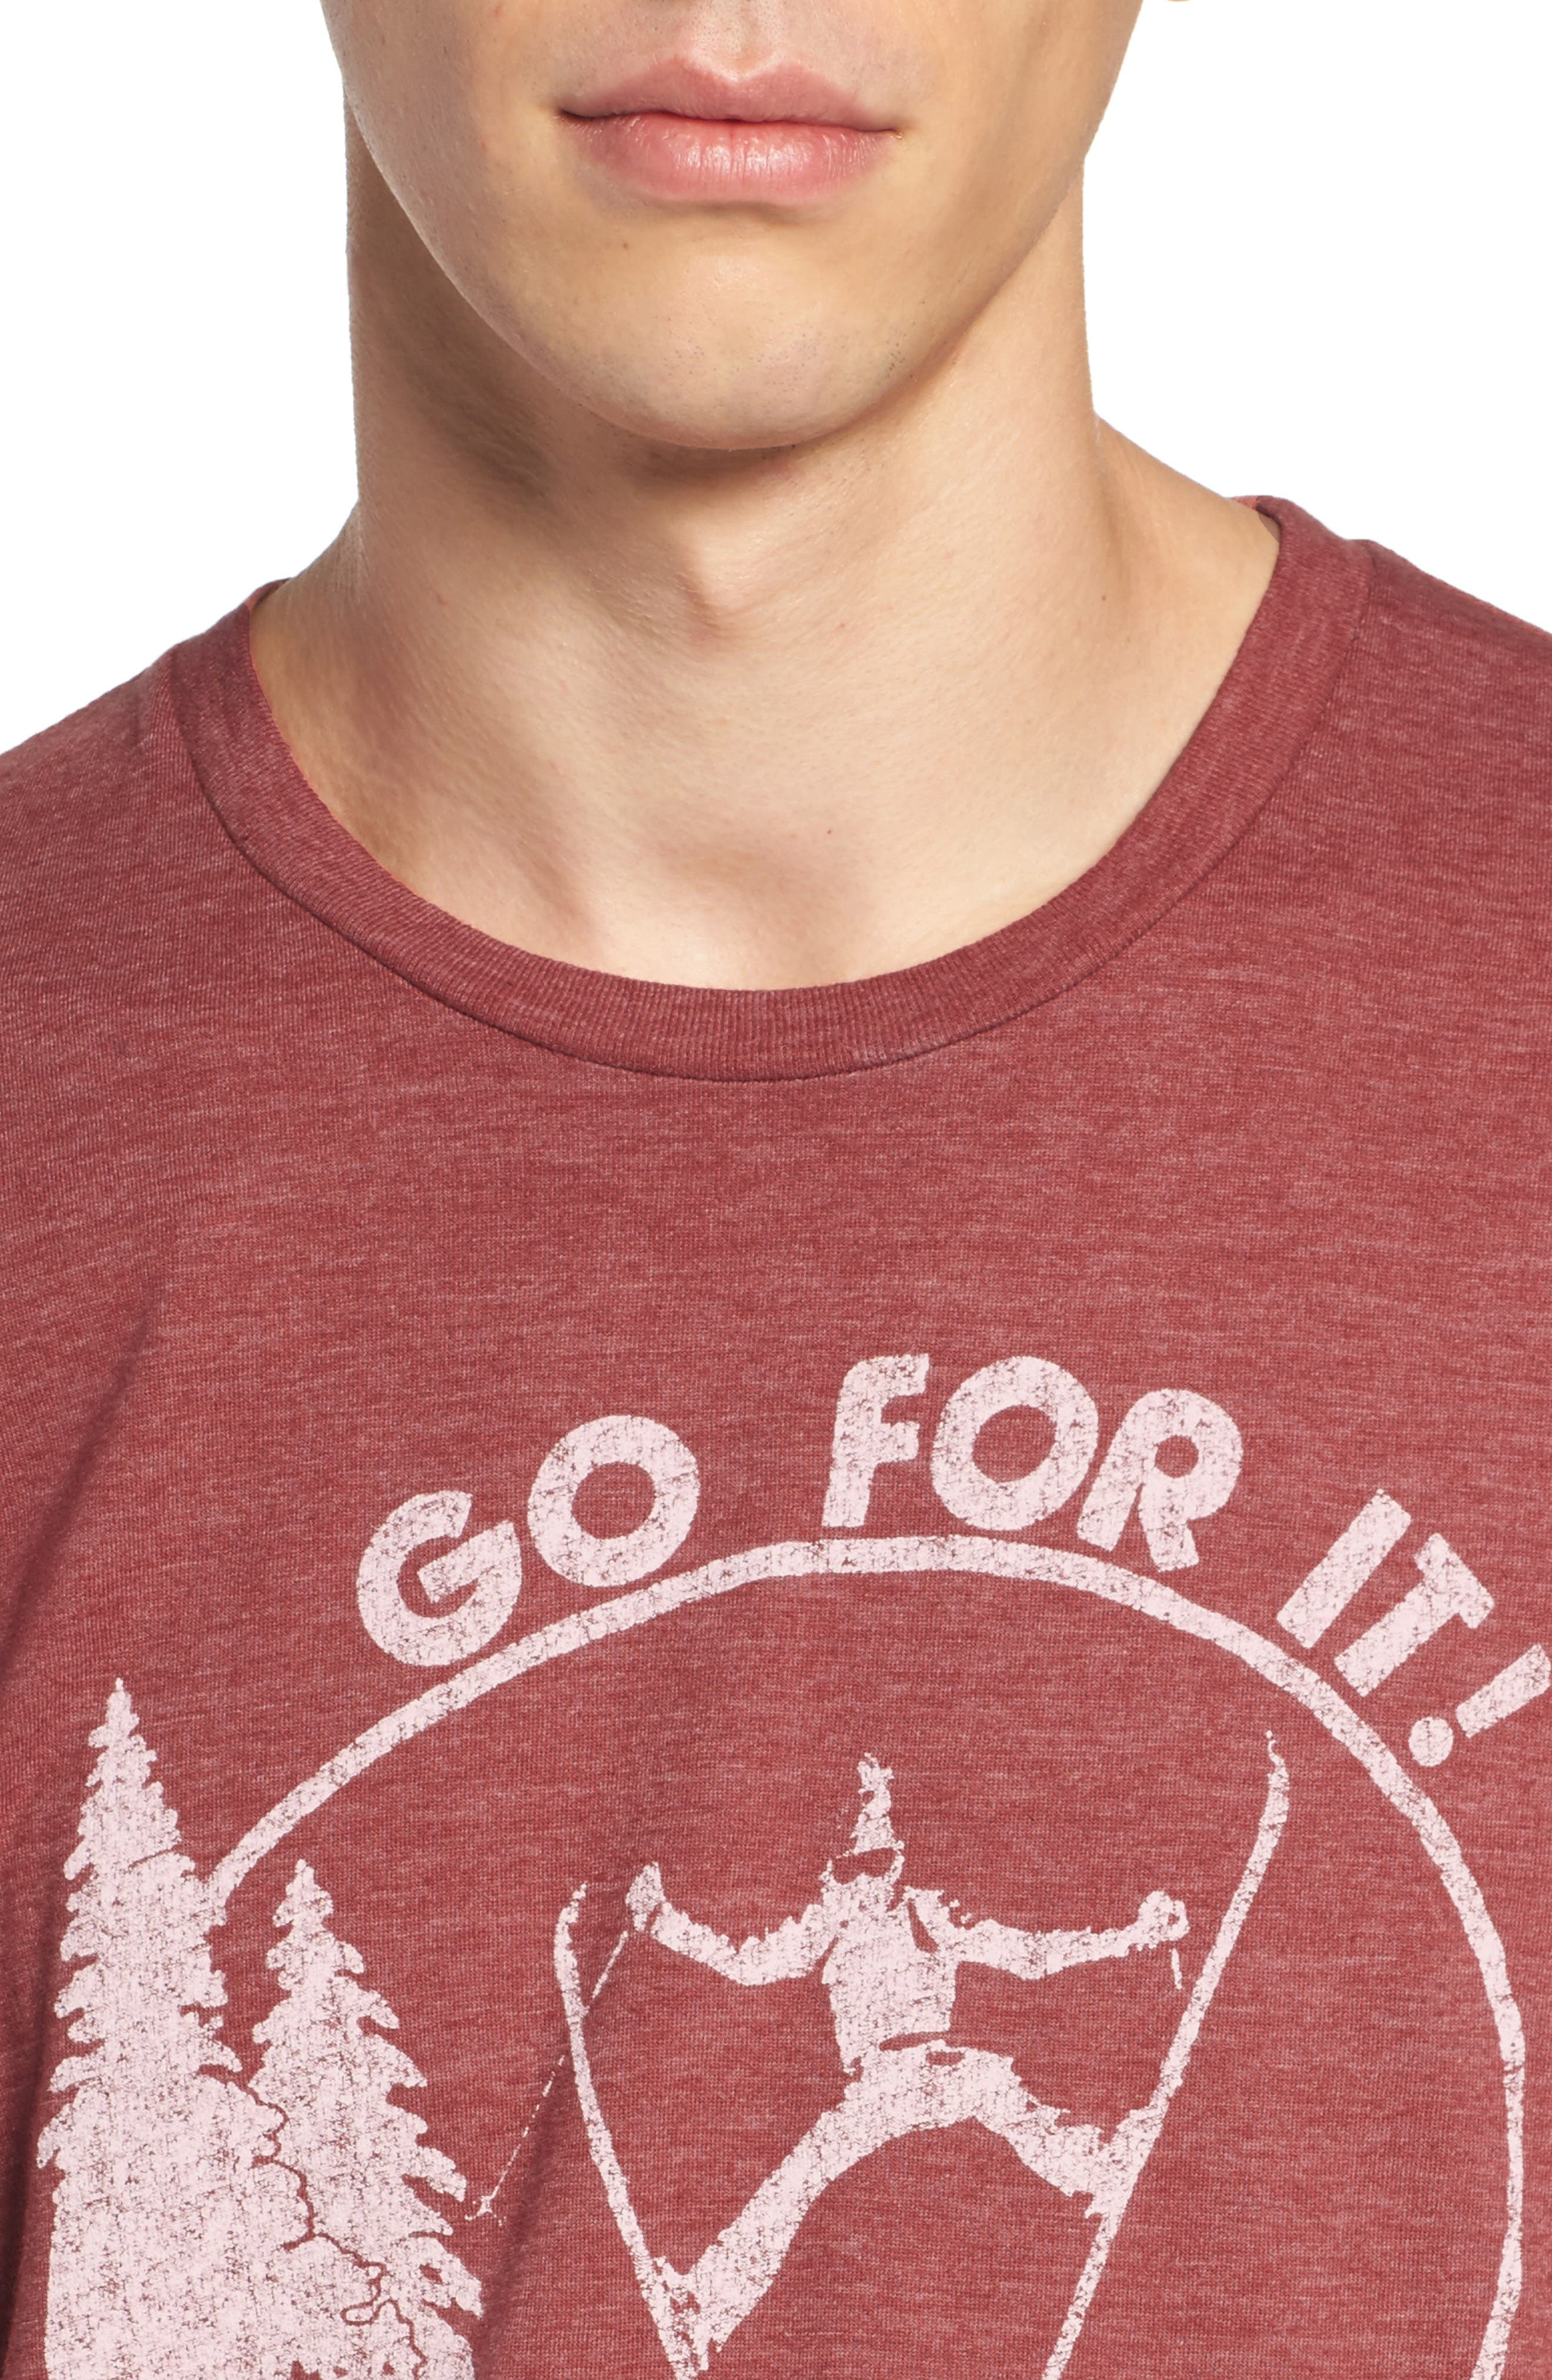 Go for It Graphic T-Shirt,                             Alternate thumbnail 4, color,                             610